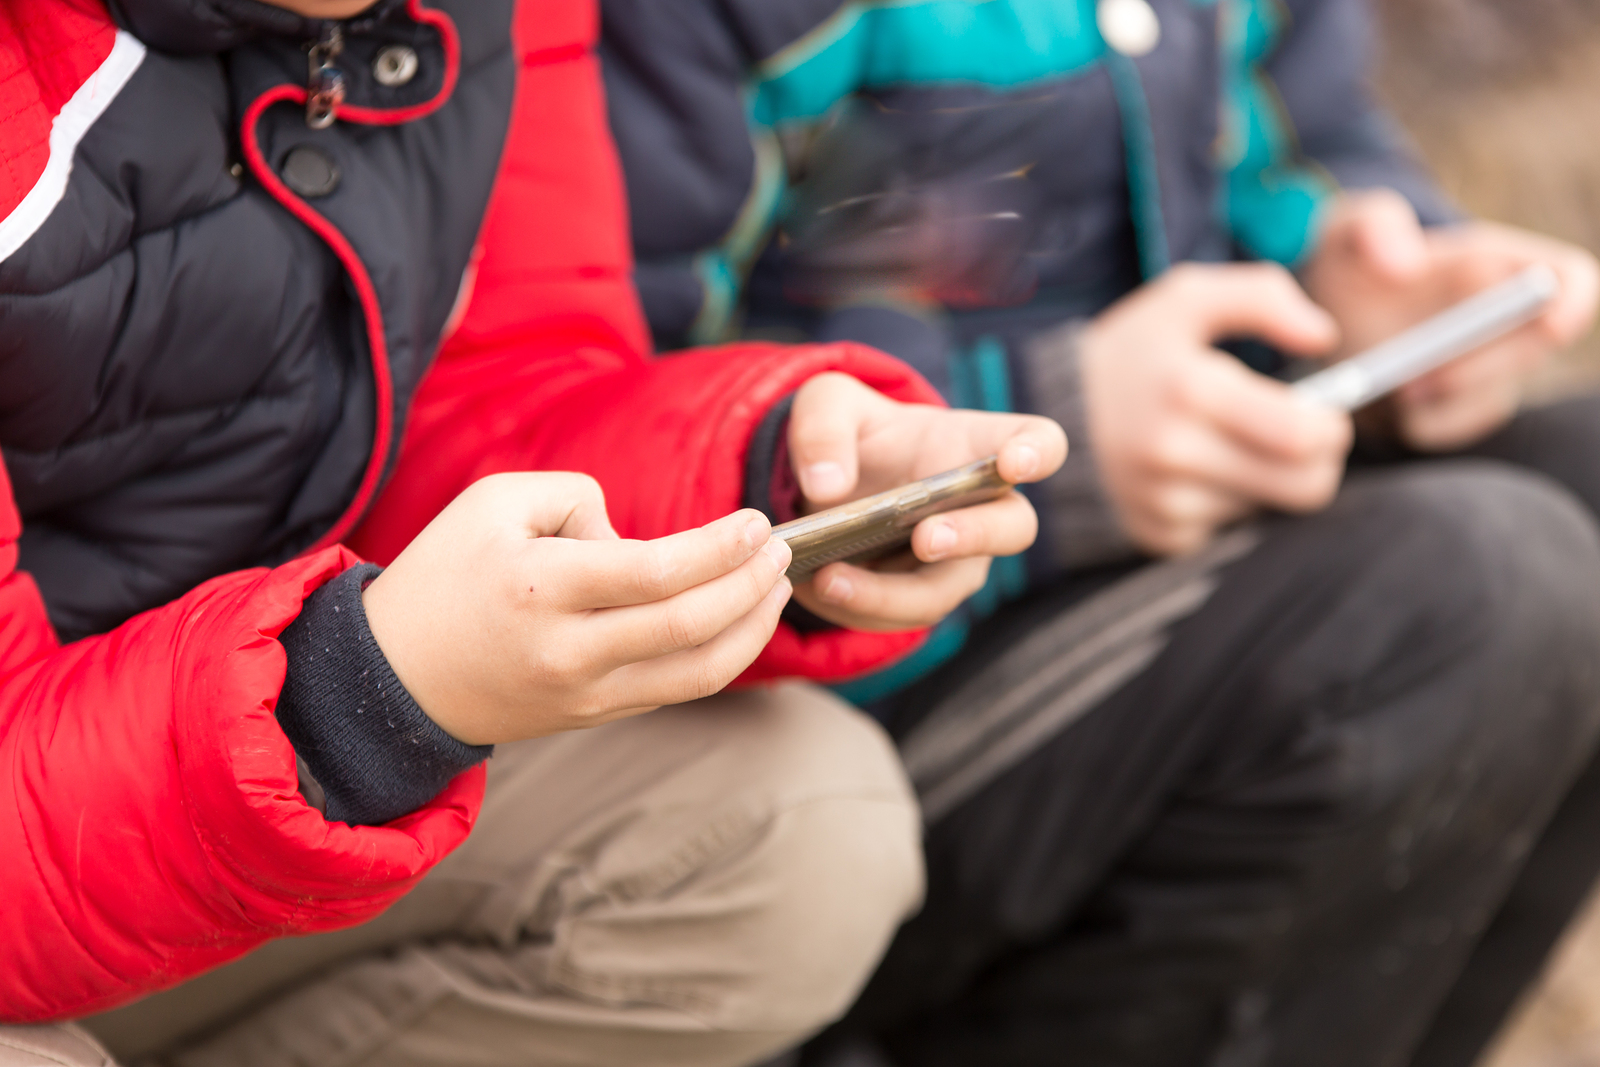 The dilemma many of us face is: when is it okay for our children to have phones?